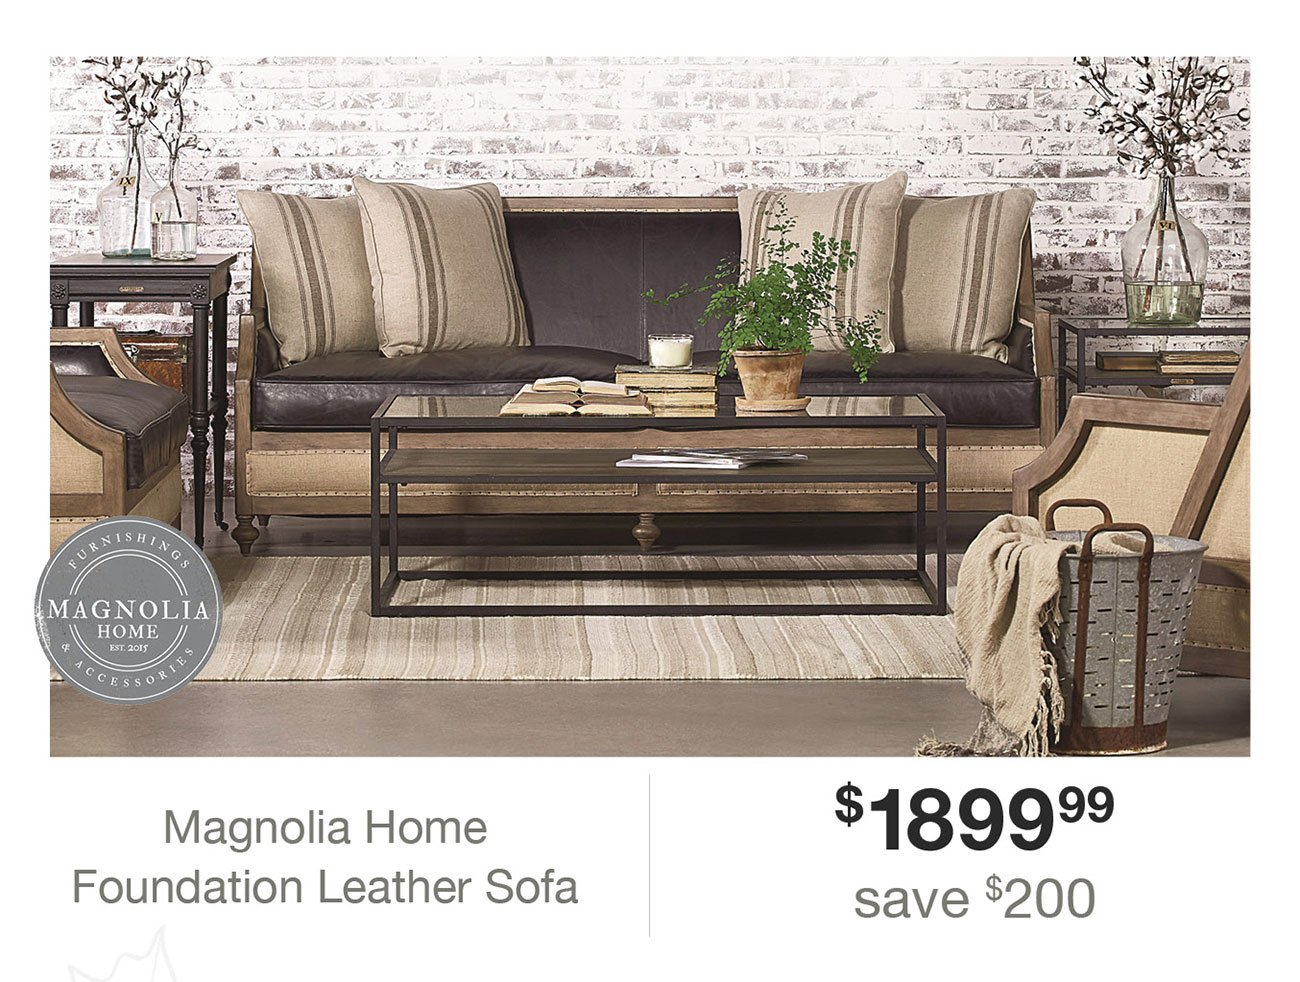 Expired Email: Hi Angela, Click Here To Make Your Home A Magnolia in Magnolia Home Foundation Leather Sofa Chairs